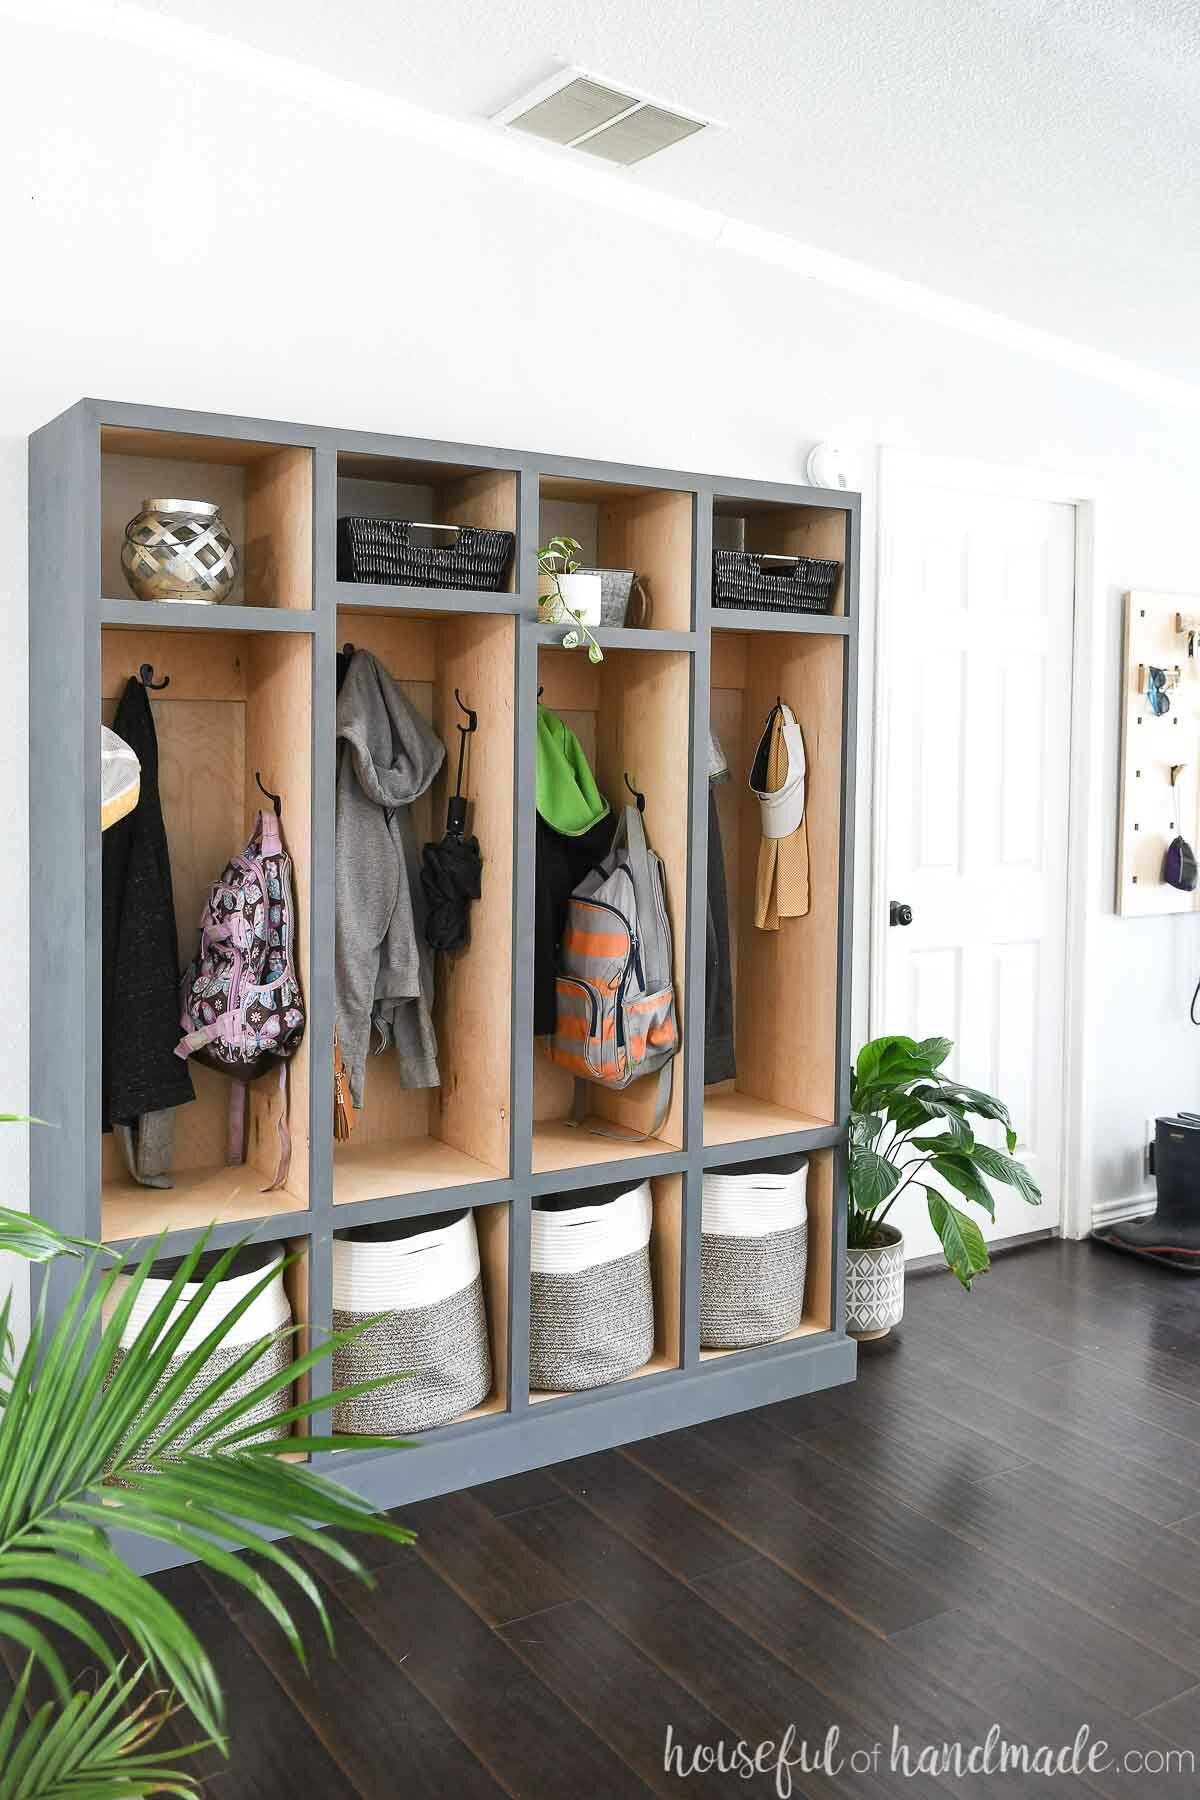 DIY mudroom storage lockers with natural wood tone on the inside and gray-blue painted outside in an entryway filled with coats and backpacks.